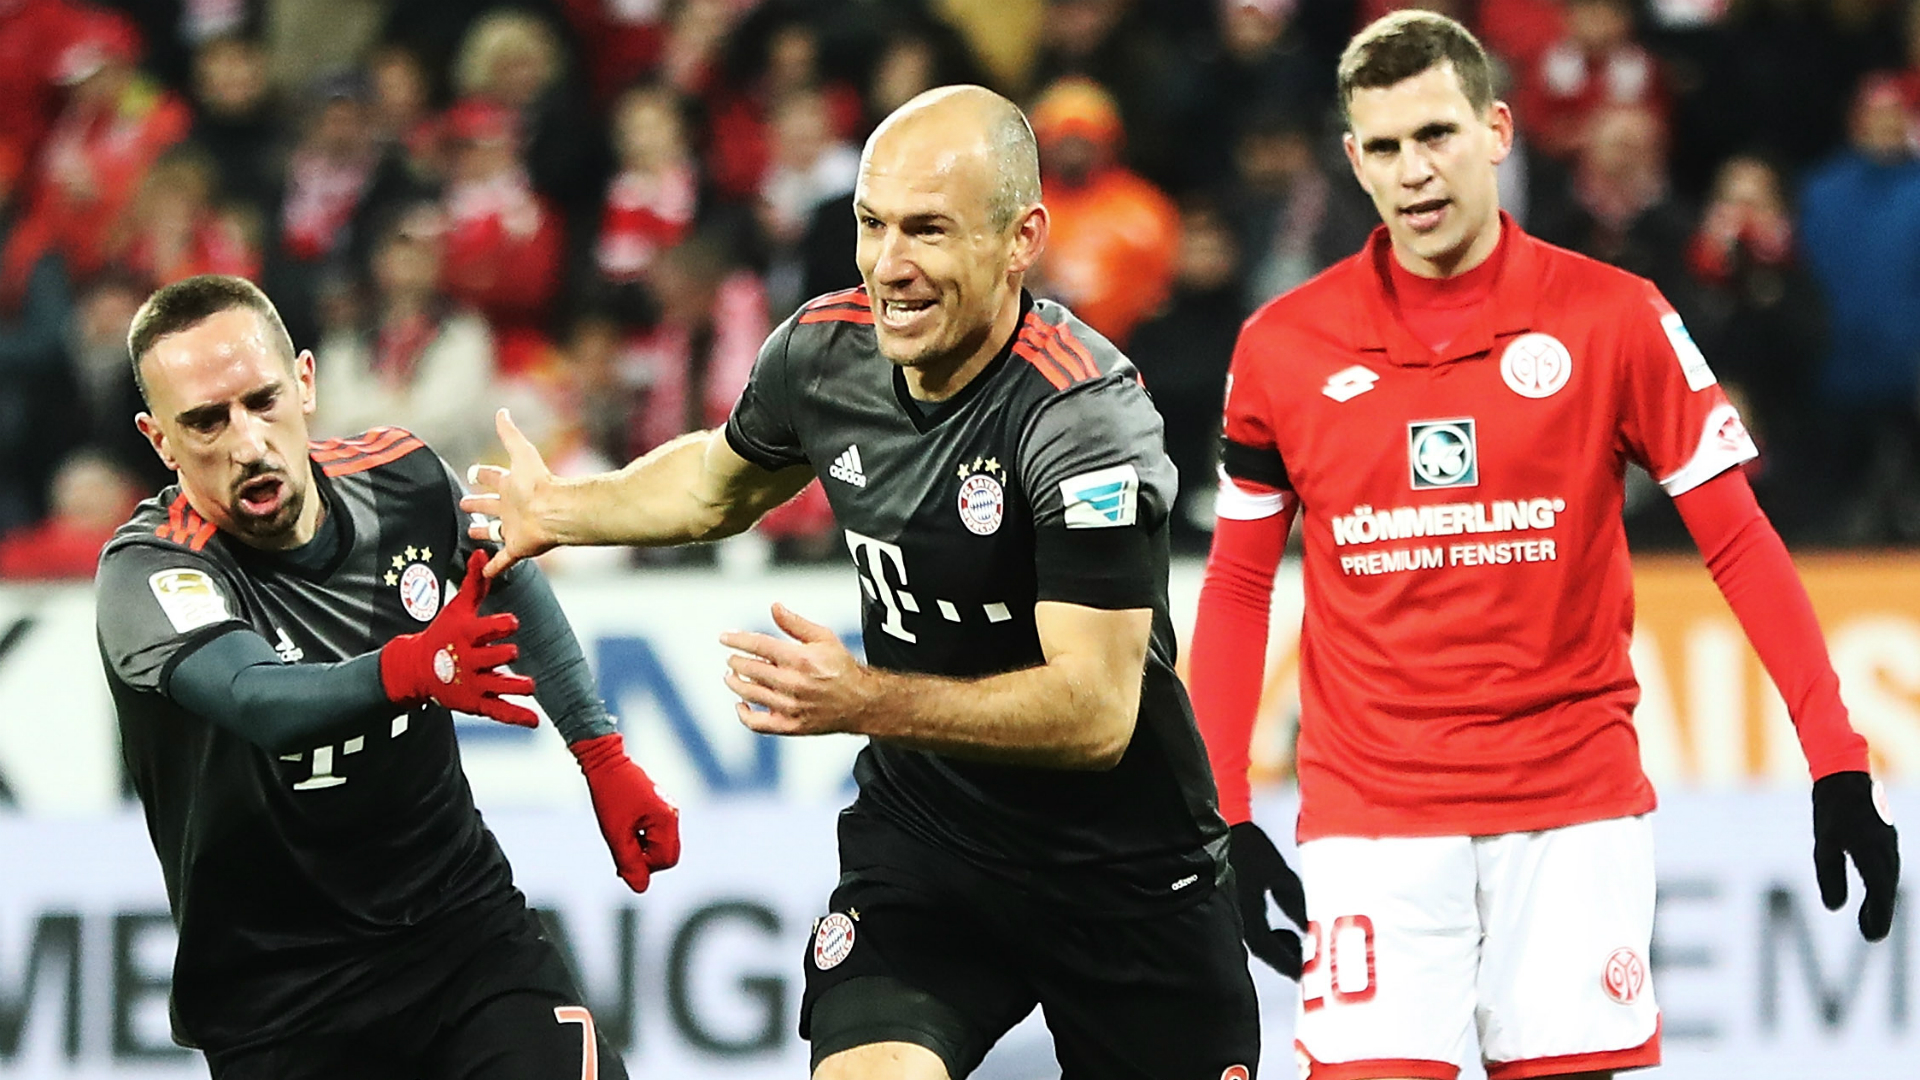 Ancelotti lauds Muller after Bayern win